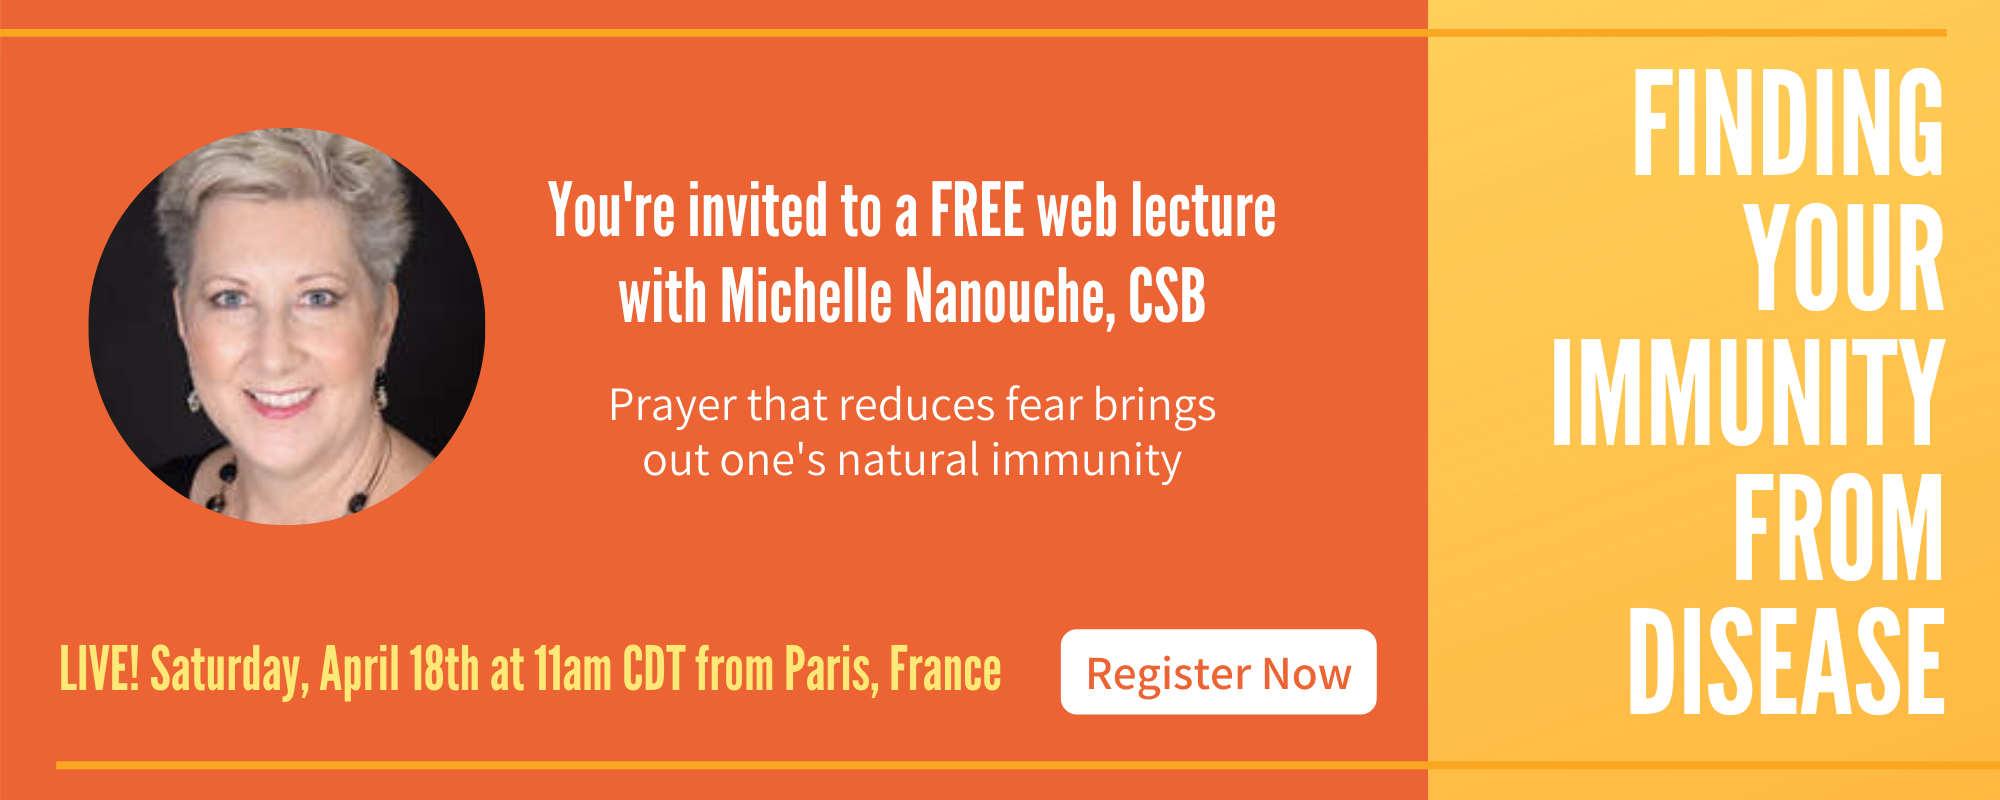 "[:en]""Finding Your Immunity From Disease"" - Online Christian Science Lecture by Michelle Nanouche, CSB[:]"